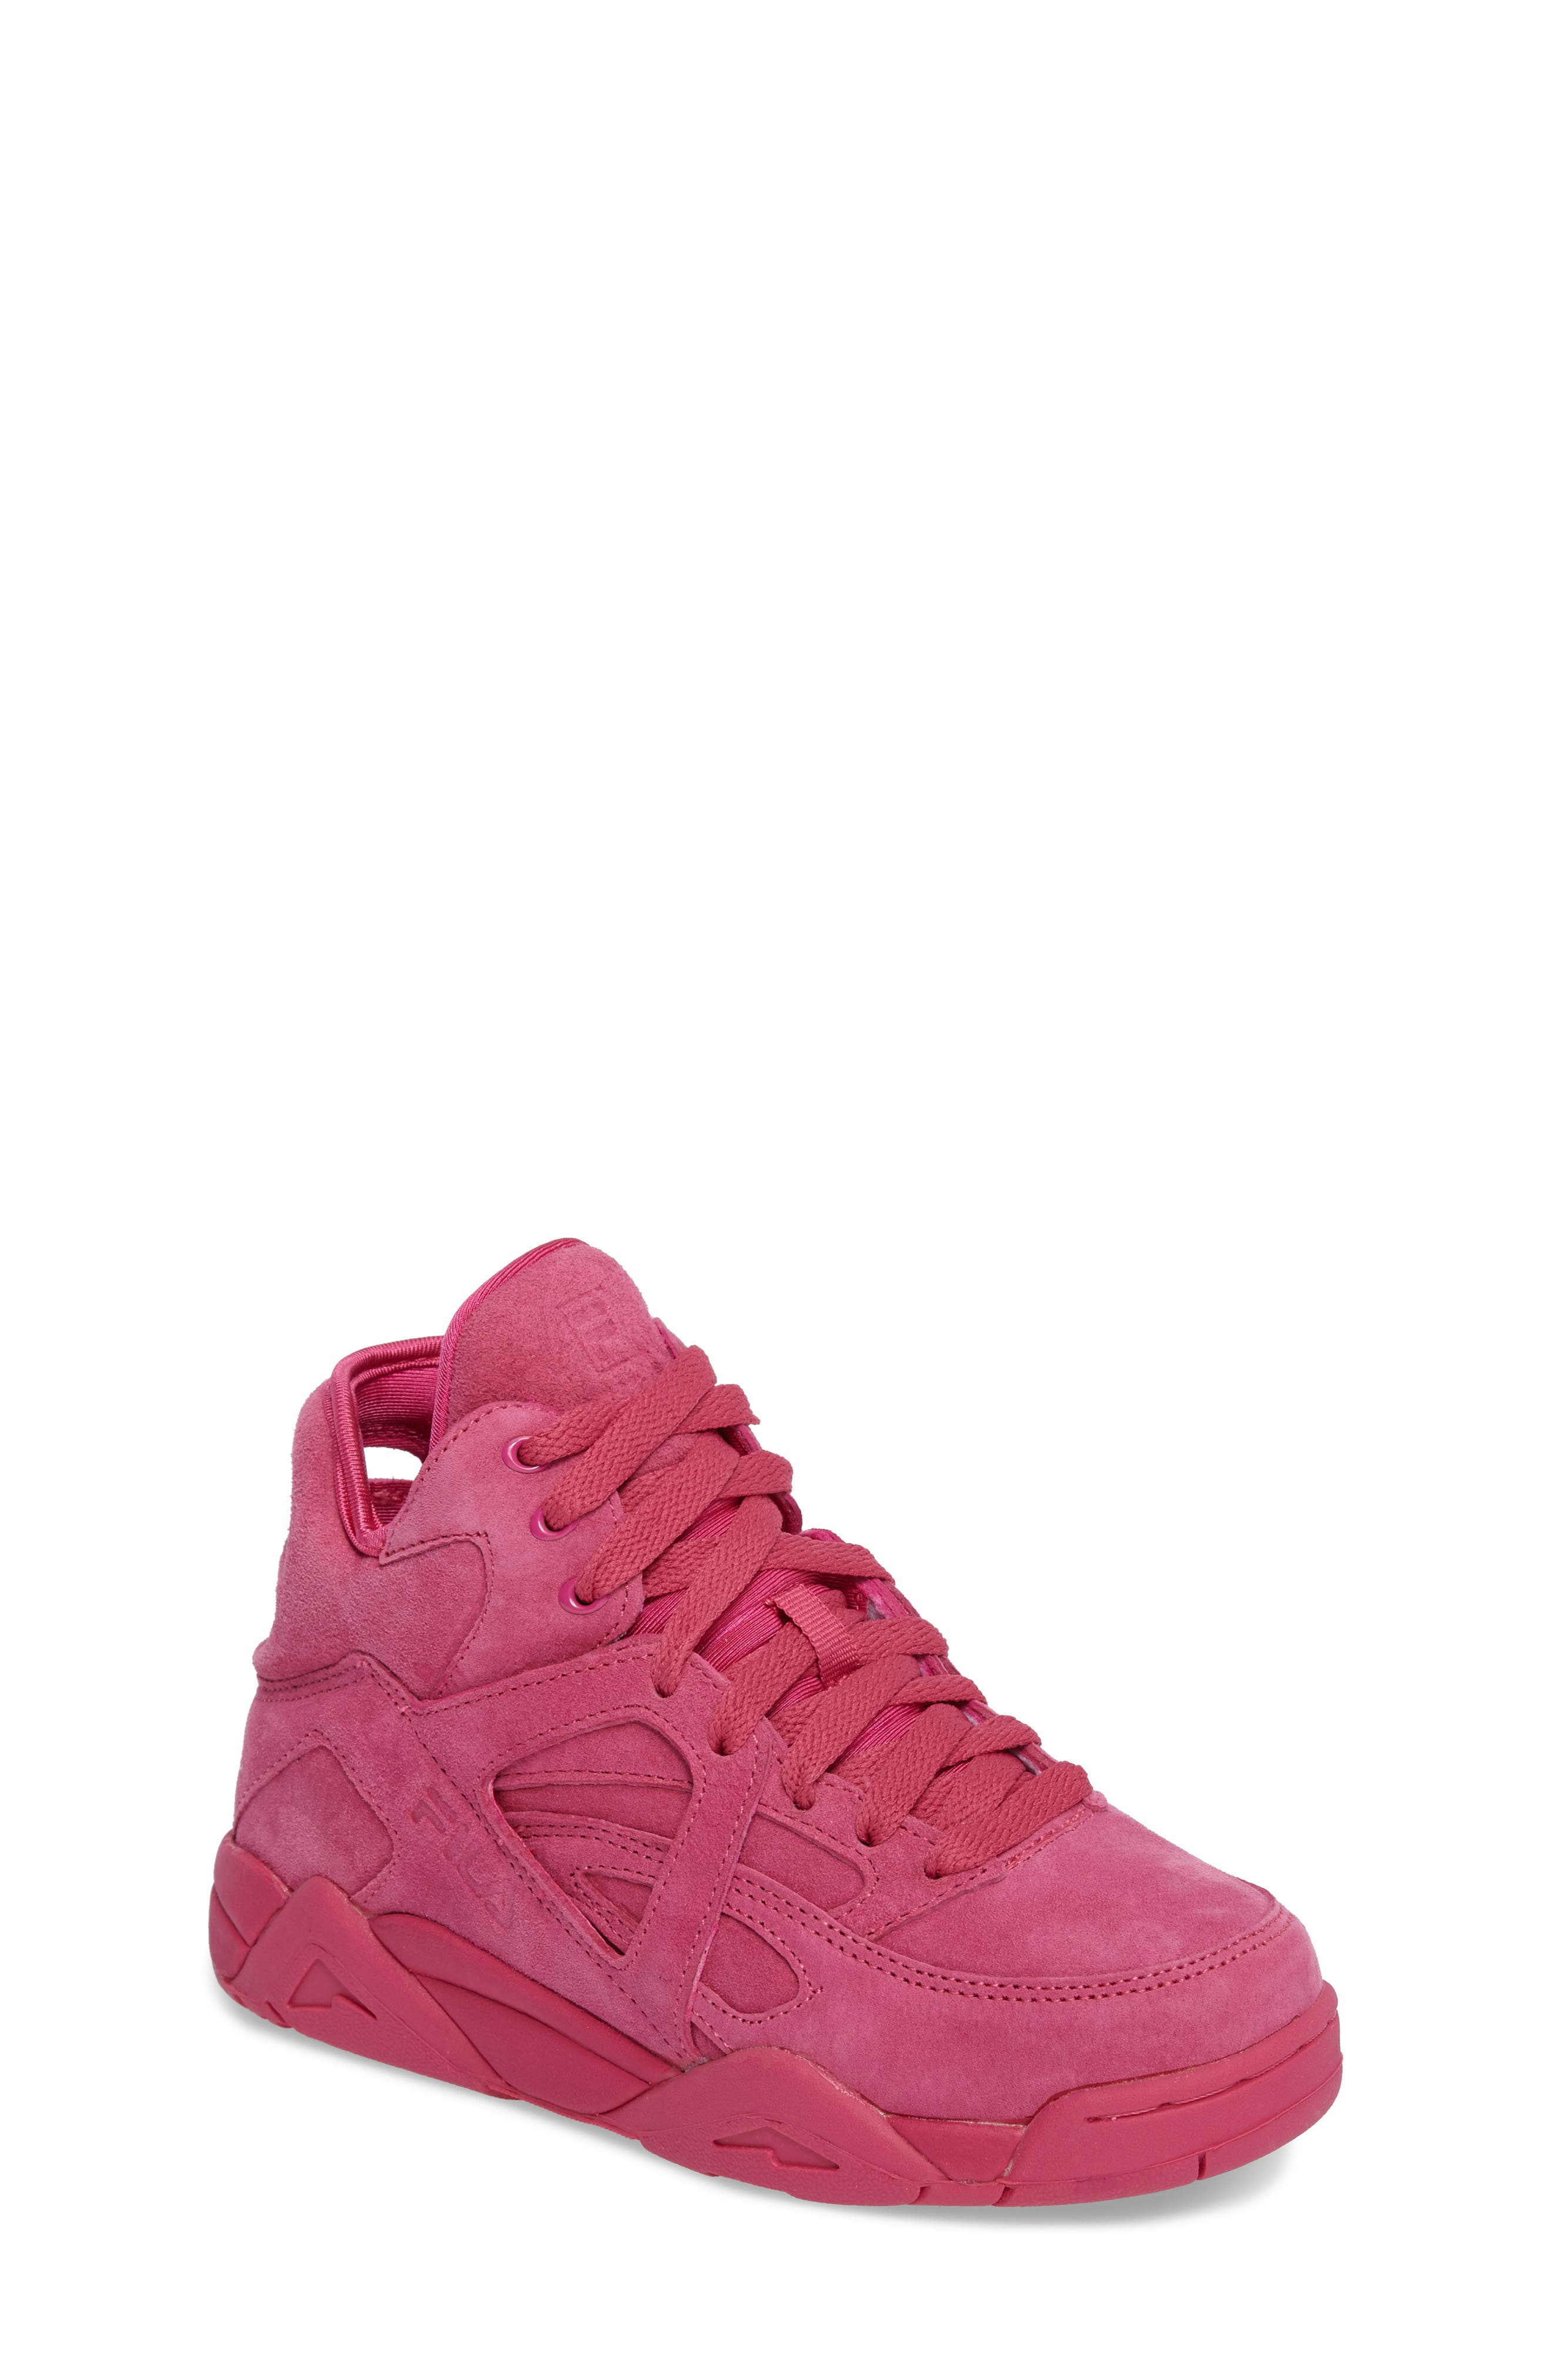 The Cage High Top Sneaker,                             Main thumbnail 1, color,                             650